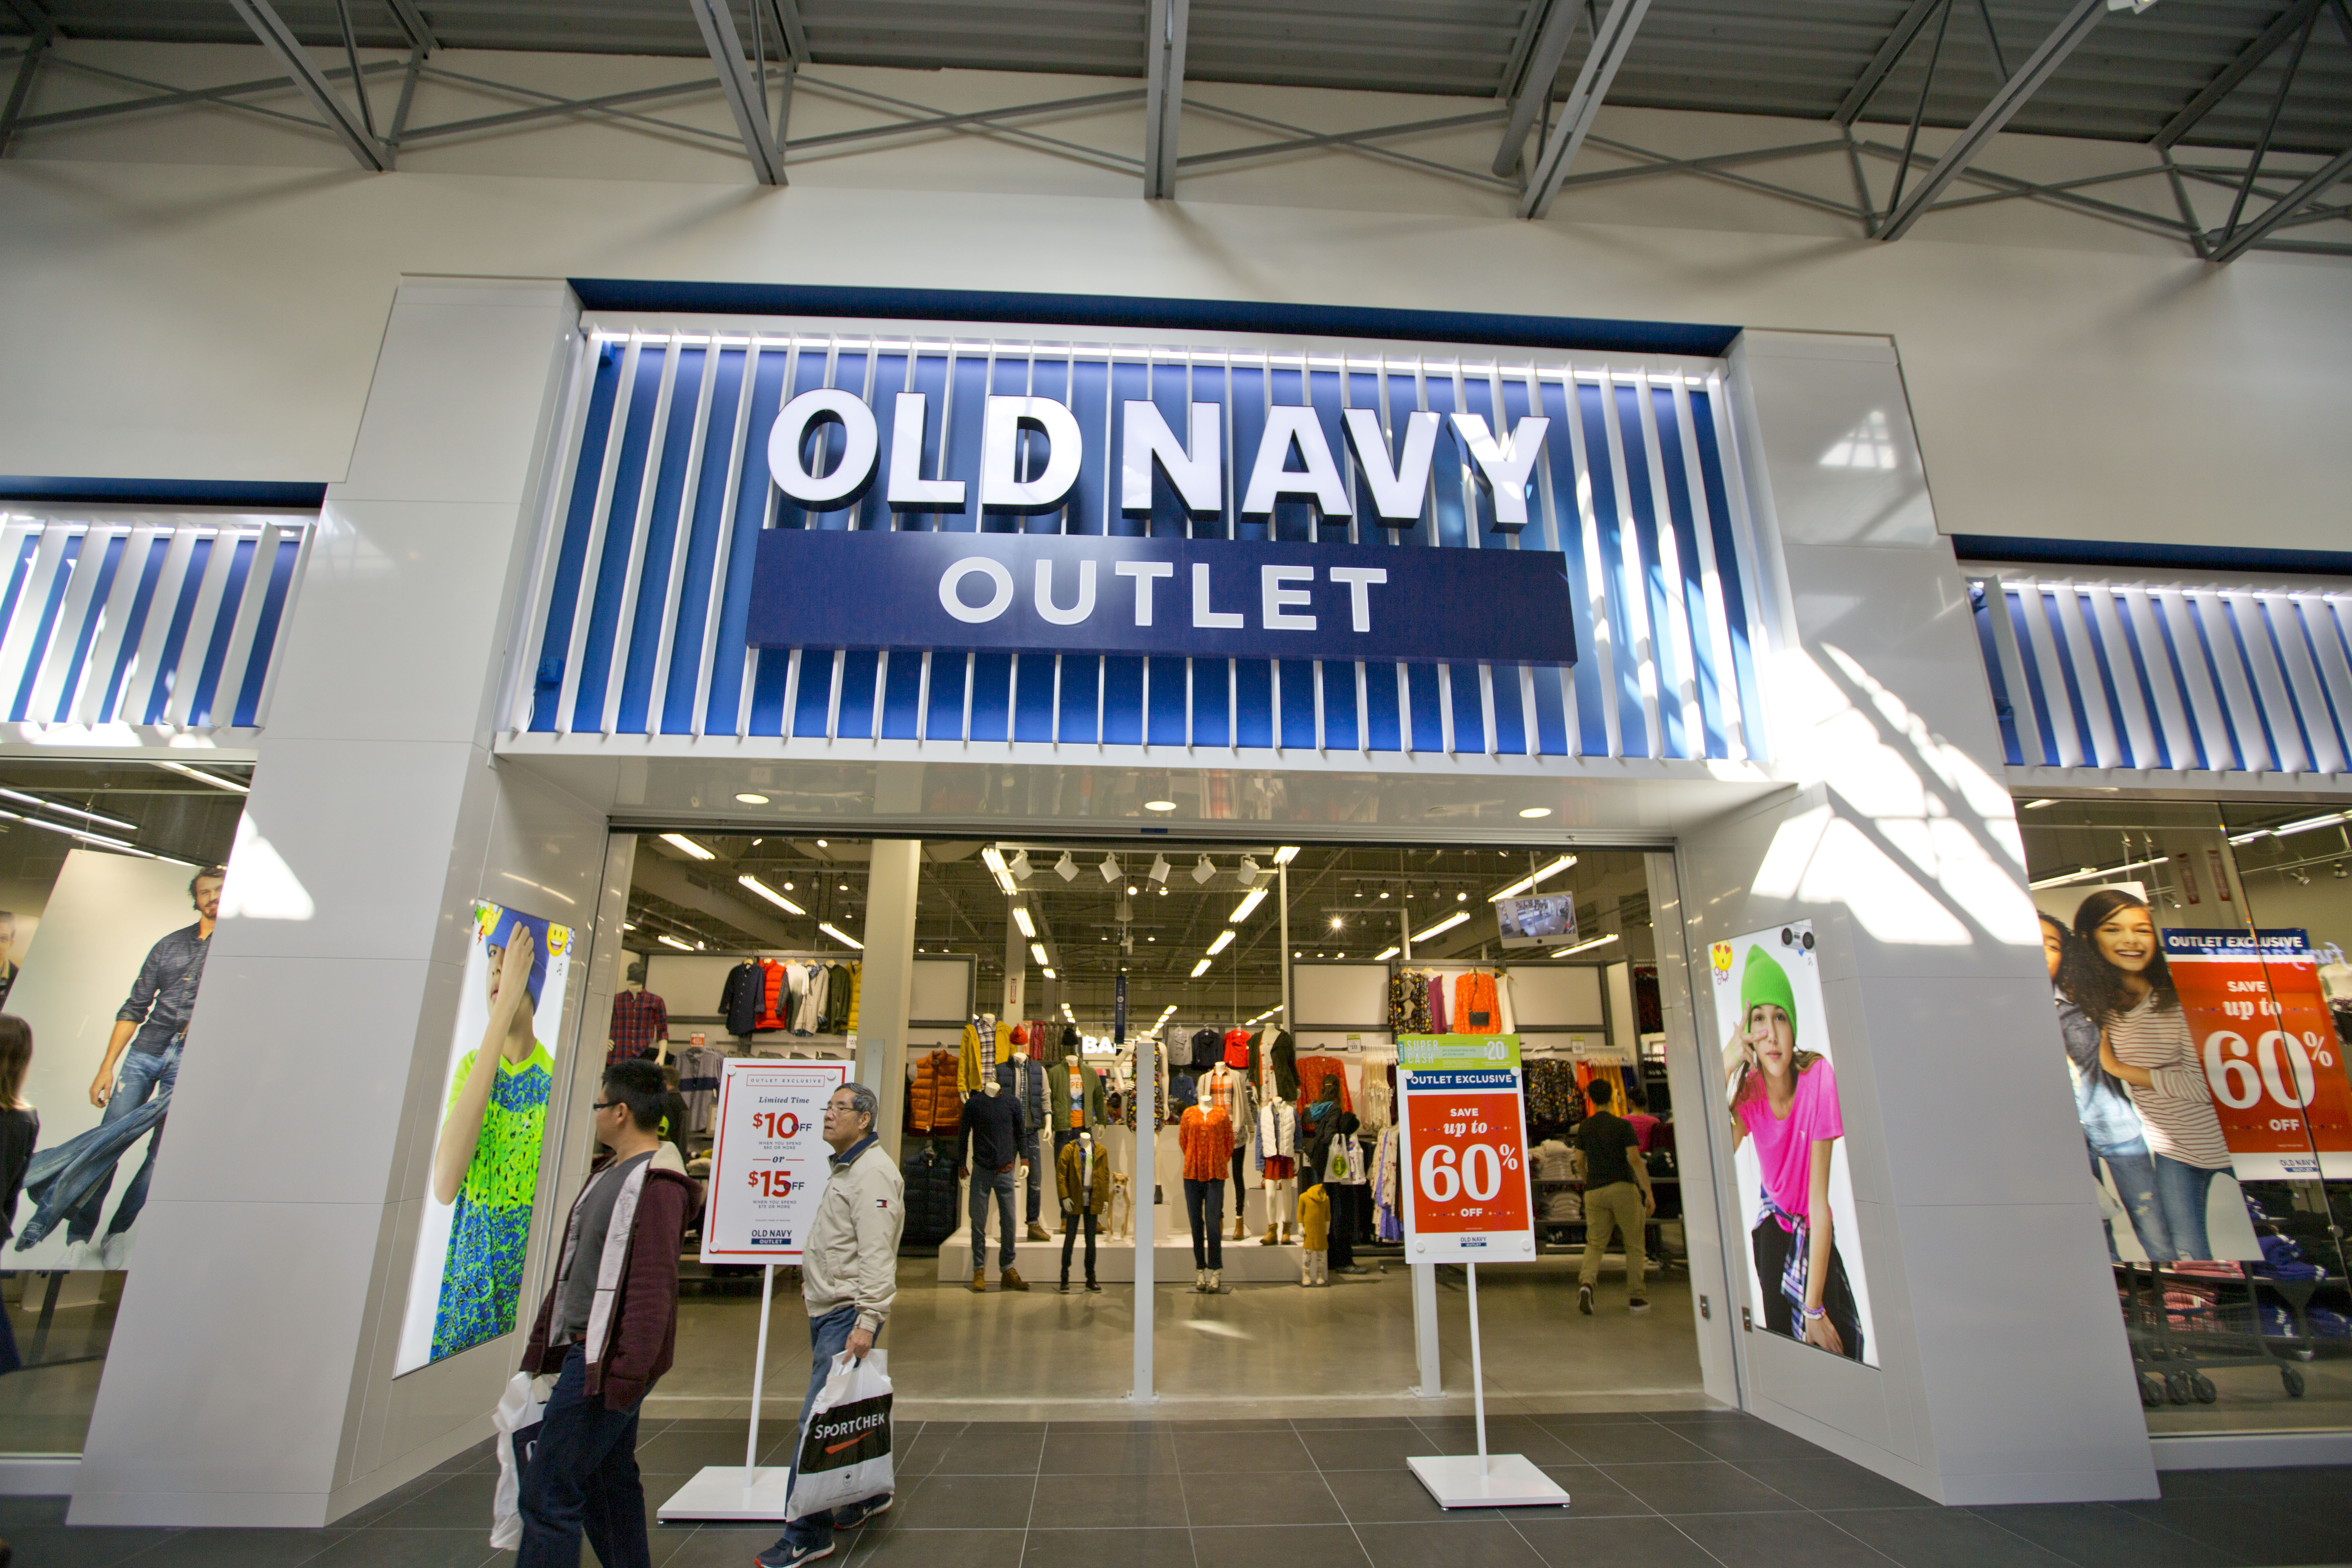 Old Navy is a low-cost clothing retailer offering trendy and casual fashion for children and adults. With a constantly rotating selection of styles, Old Navy is a great place to change up your look for different seasons throughout the year.